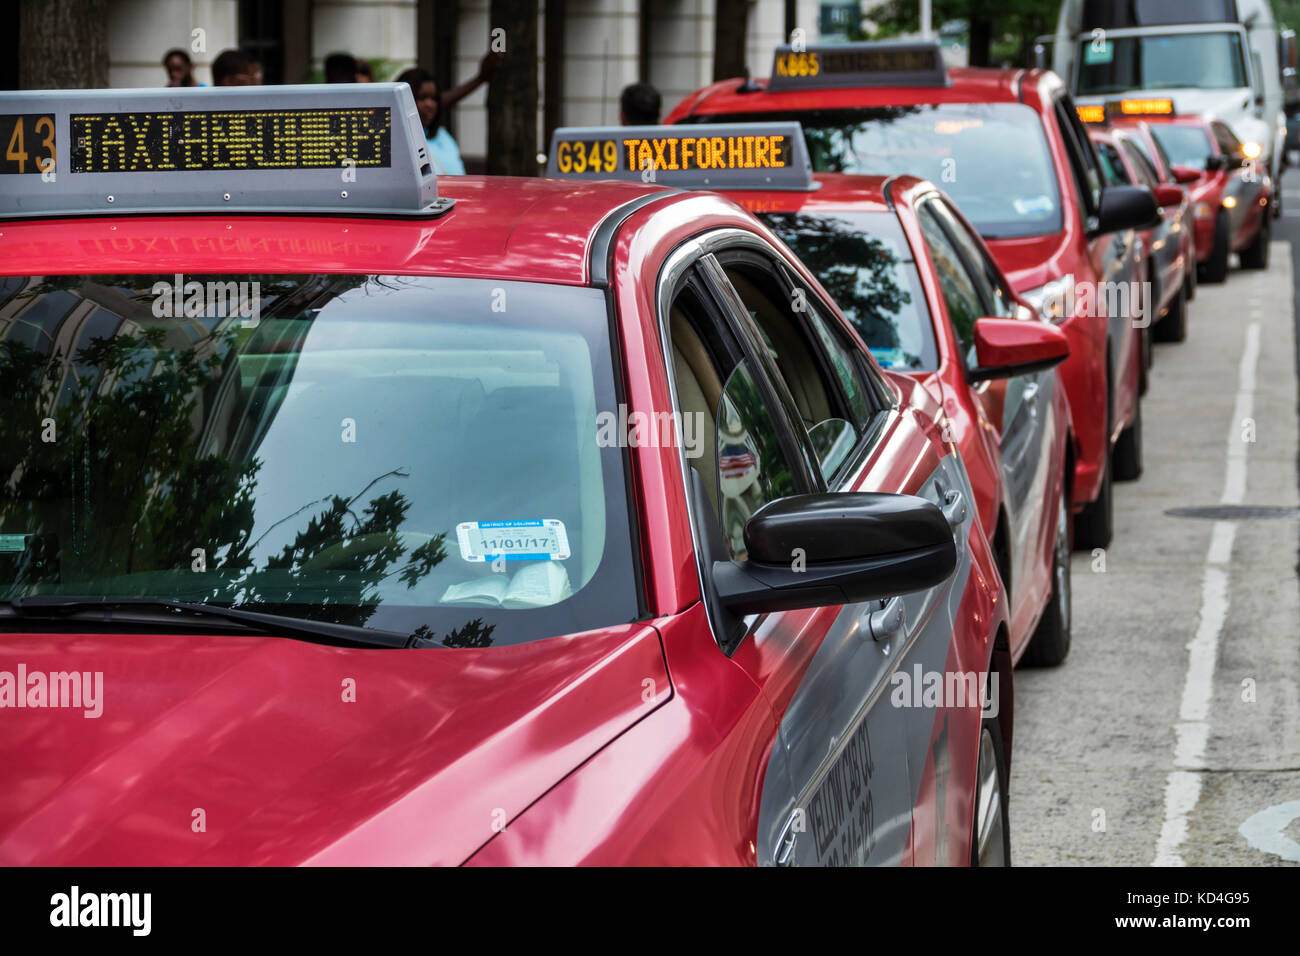 Washington DC District of Columbia Downtown taxicab stand cab taxi cars for hire cabs red - Stock Image